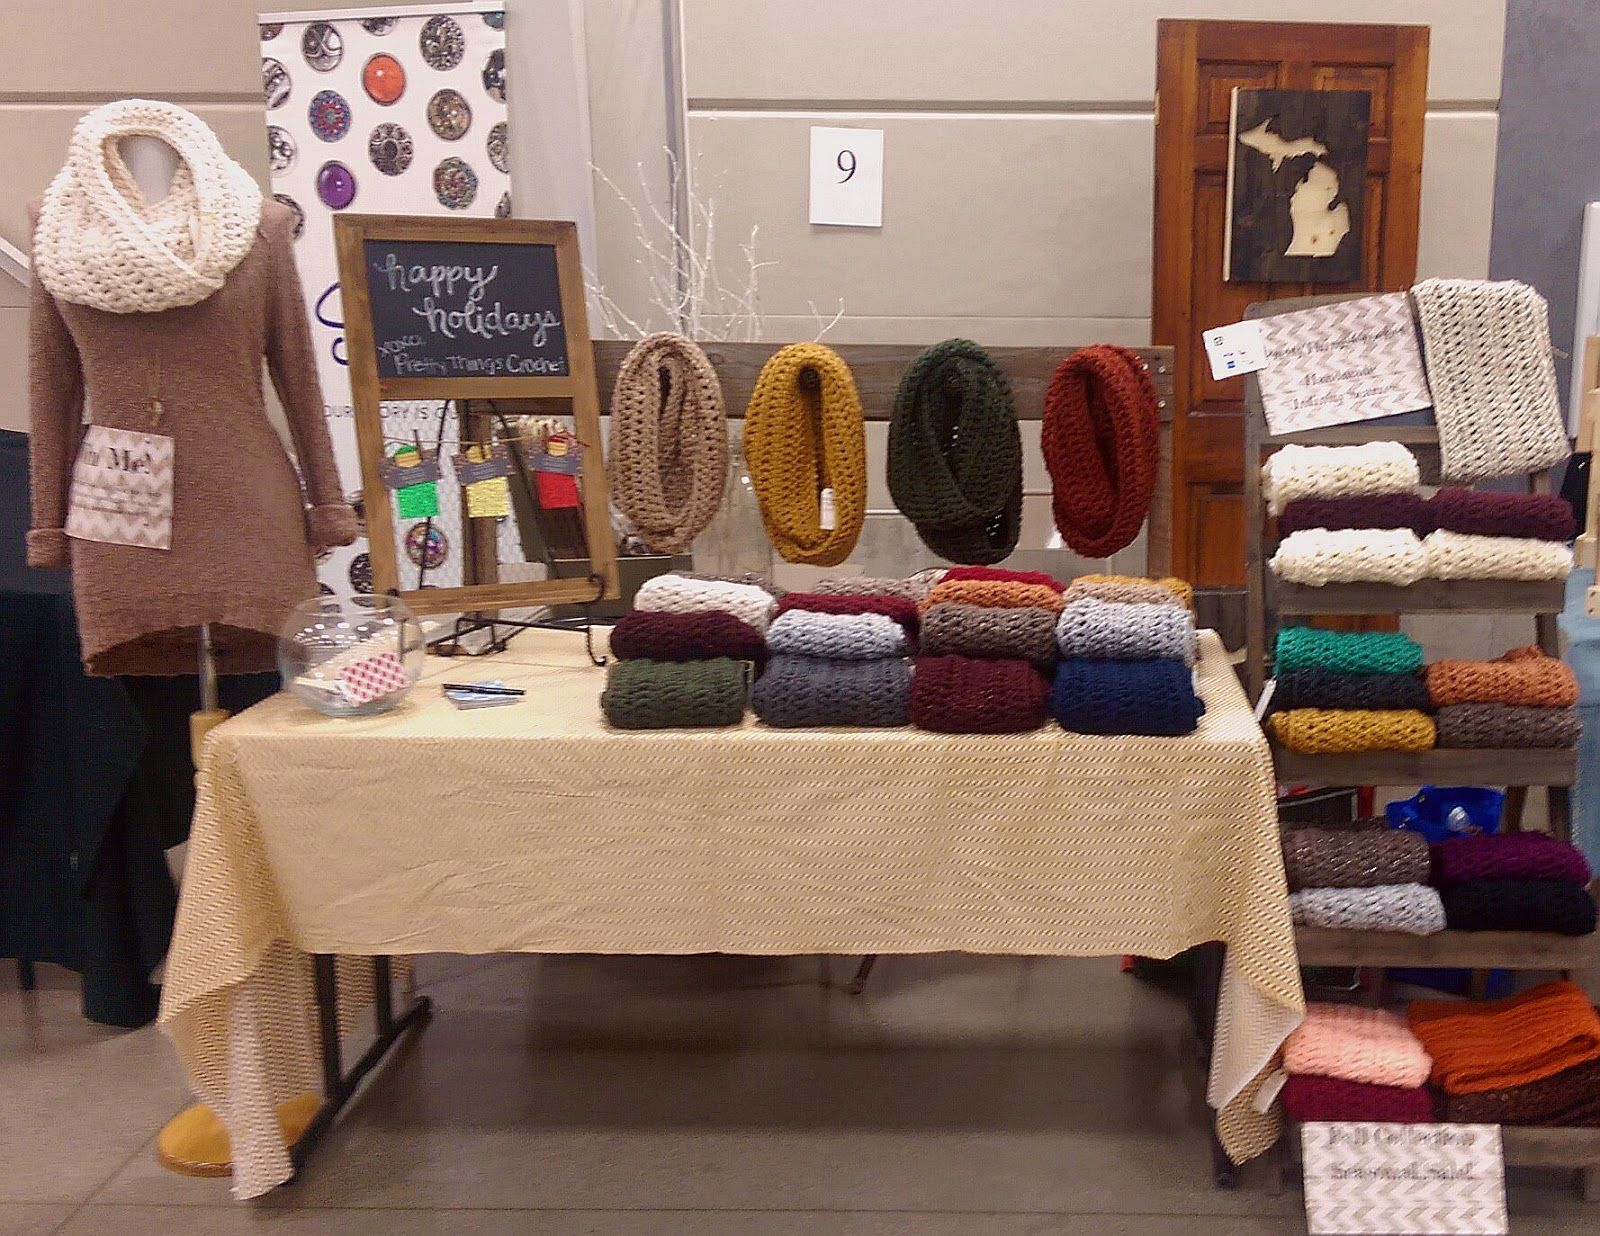 Craft Show setup and display idea for infinity scarves and crochet ...